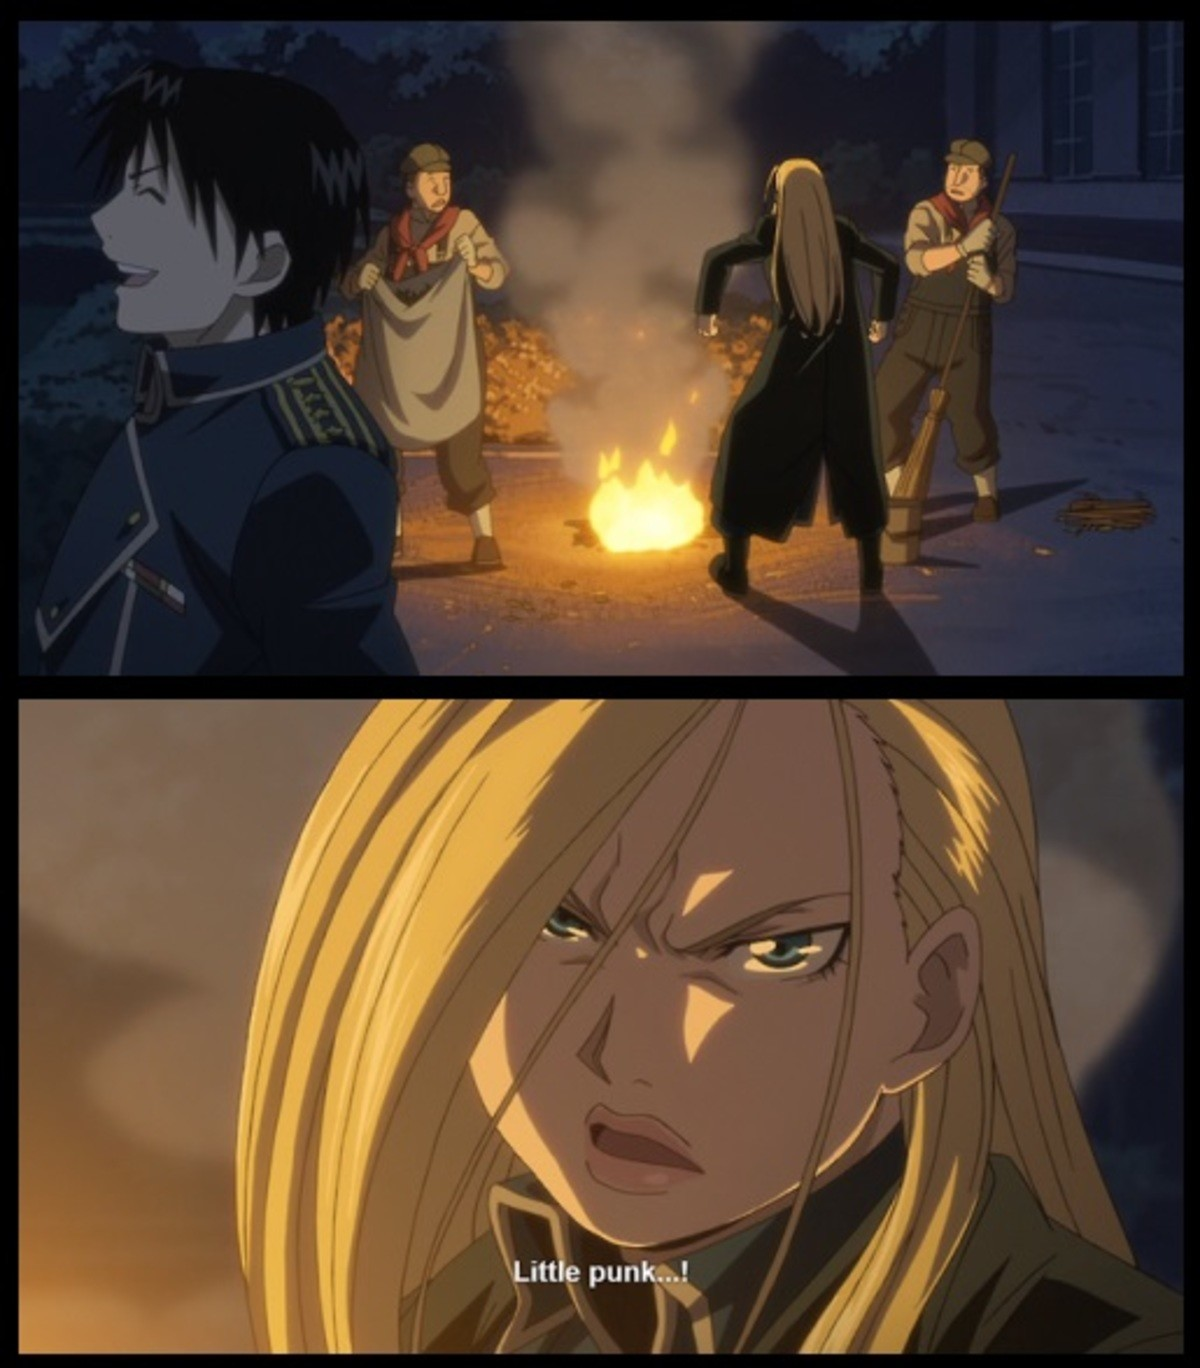 Roy mustang. .. Roy is also a prodigy with undeniable skill as both a soldier and an alchemist.